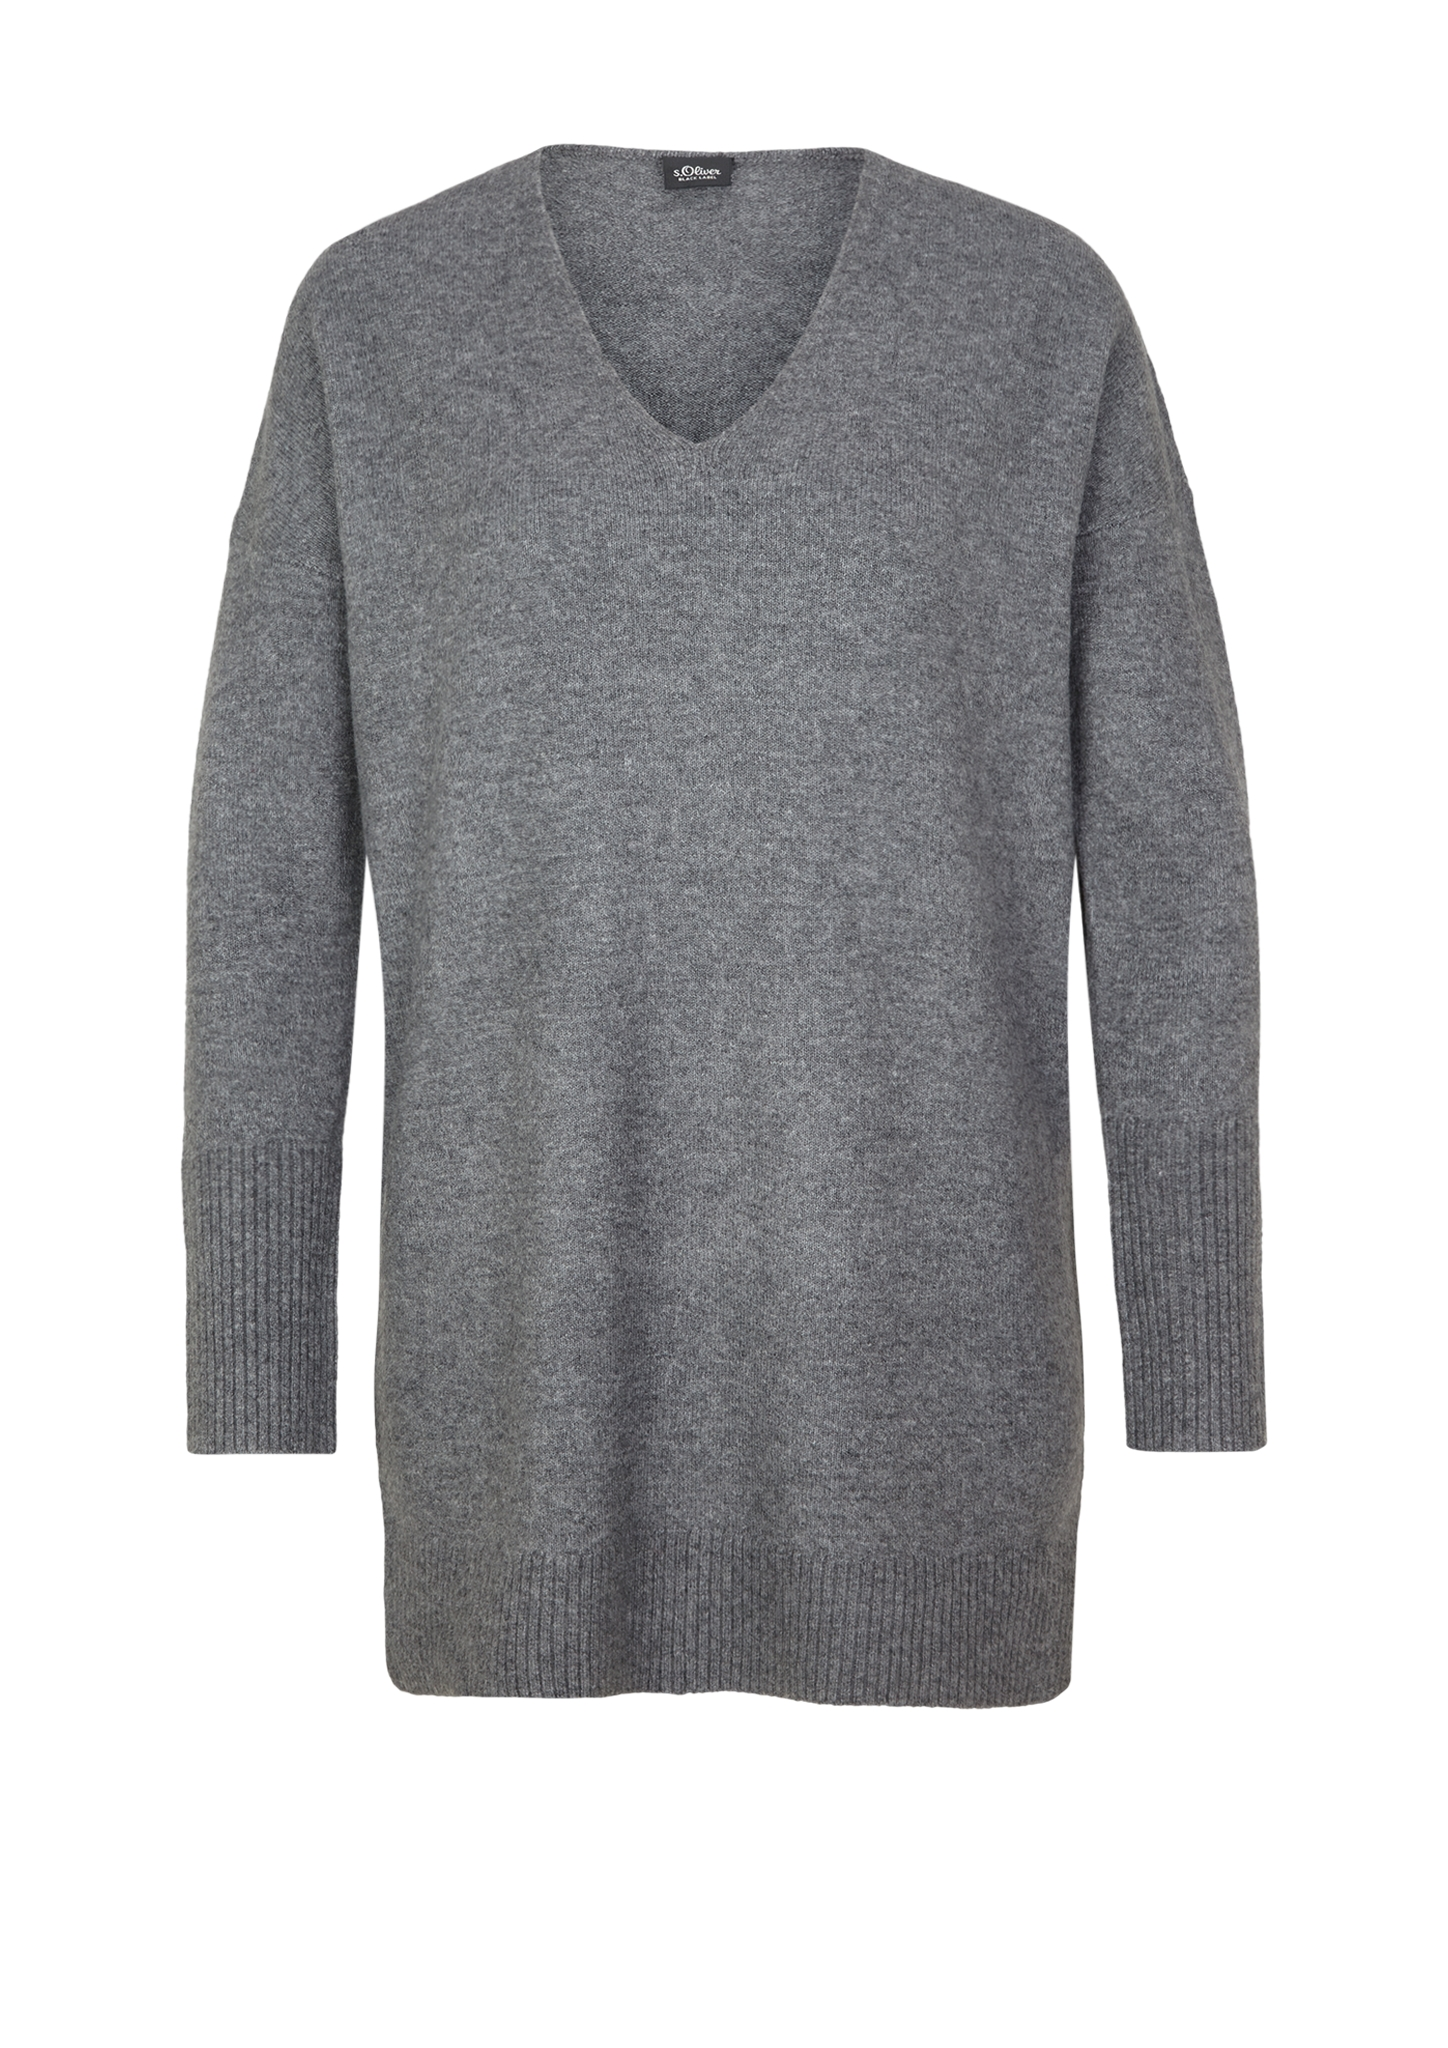 Long-Pullover   Bekleidung > Pullover > Longpullover   Grau   52% polyamid -  40% polyacryl -  5% wolle -  3% elasthan   s.Oliver BLACK LABEL